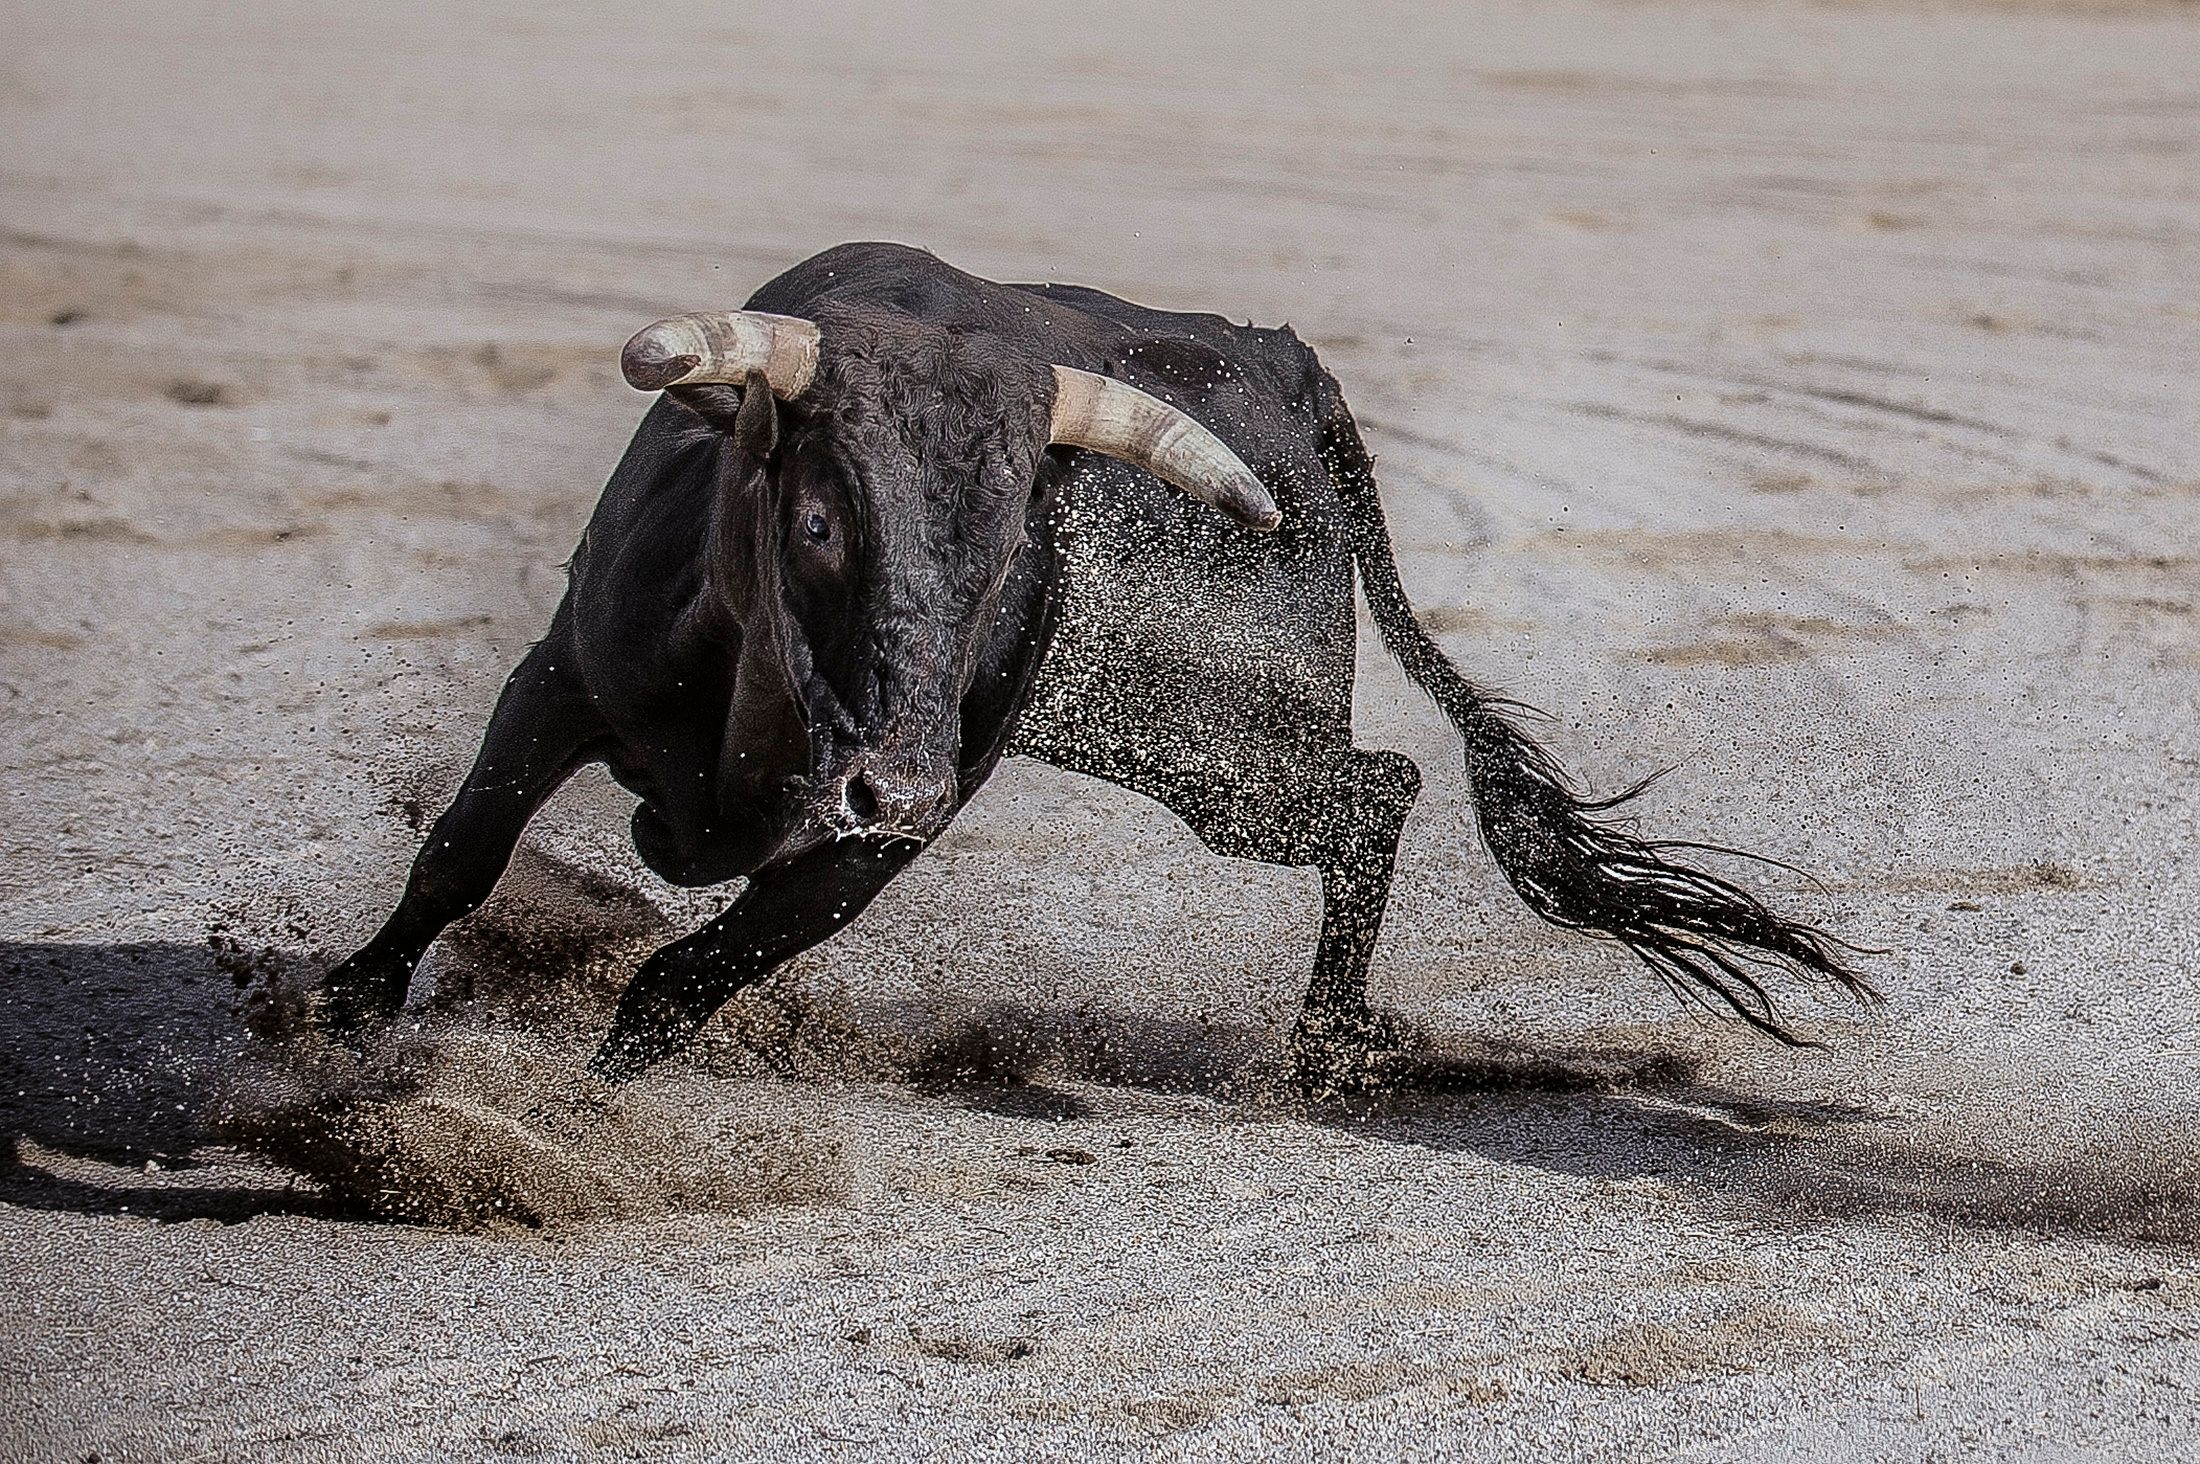 A scrapyard owner in eastern Spain has replaced his guard dogs with two fighting bulls, such as the one pictured above, follo